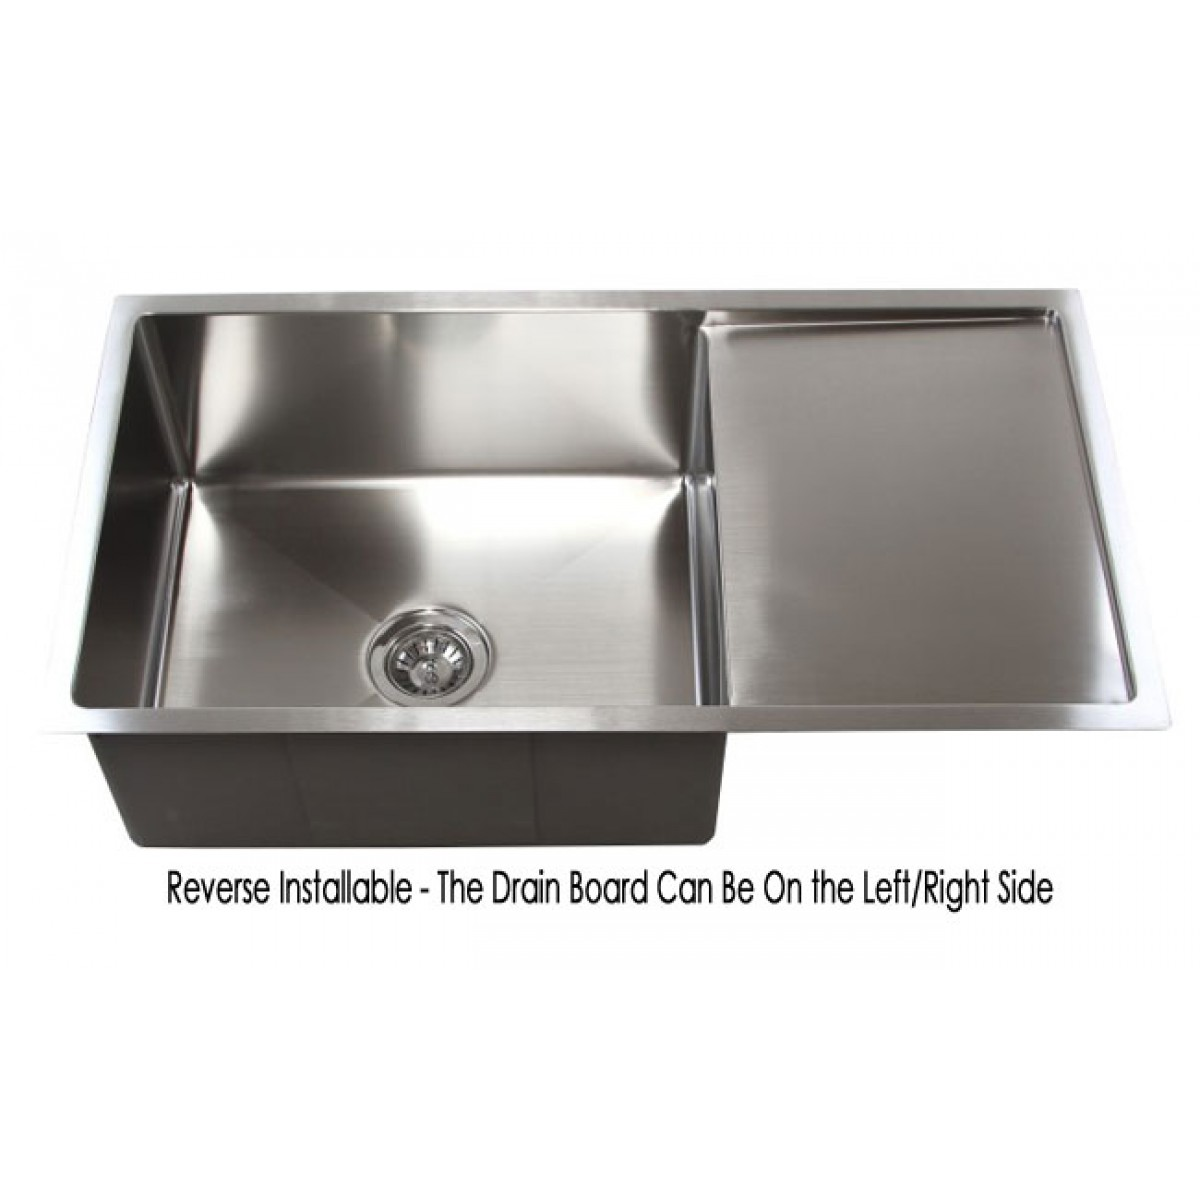 36 Inch Stainless Steel Undermount Single Bowl Kitchen Sink